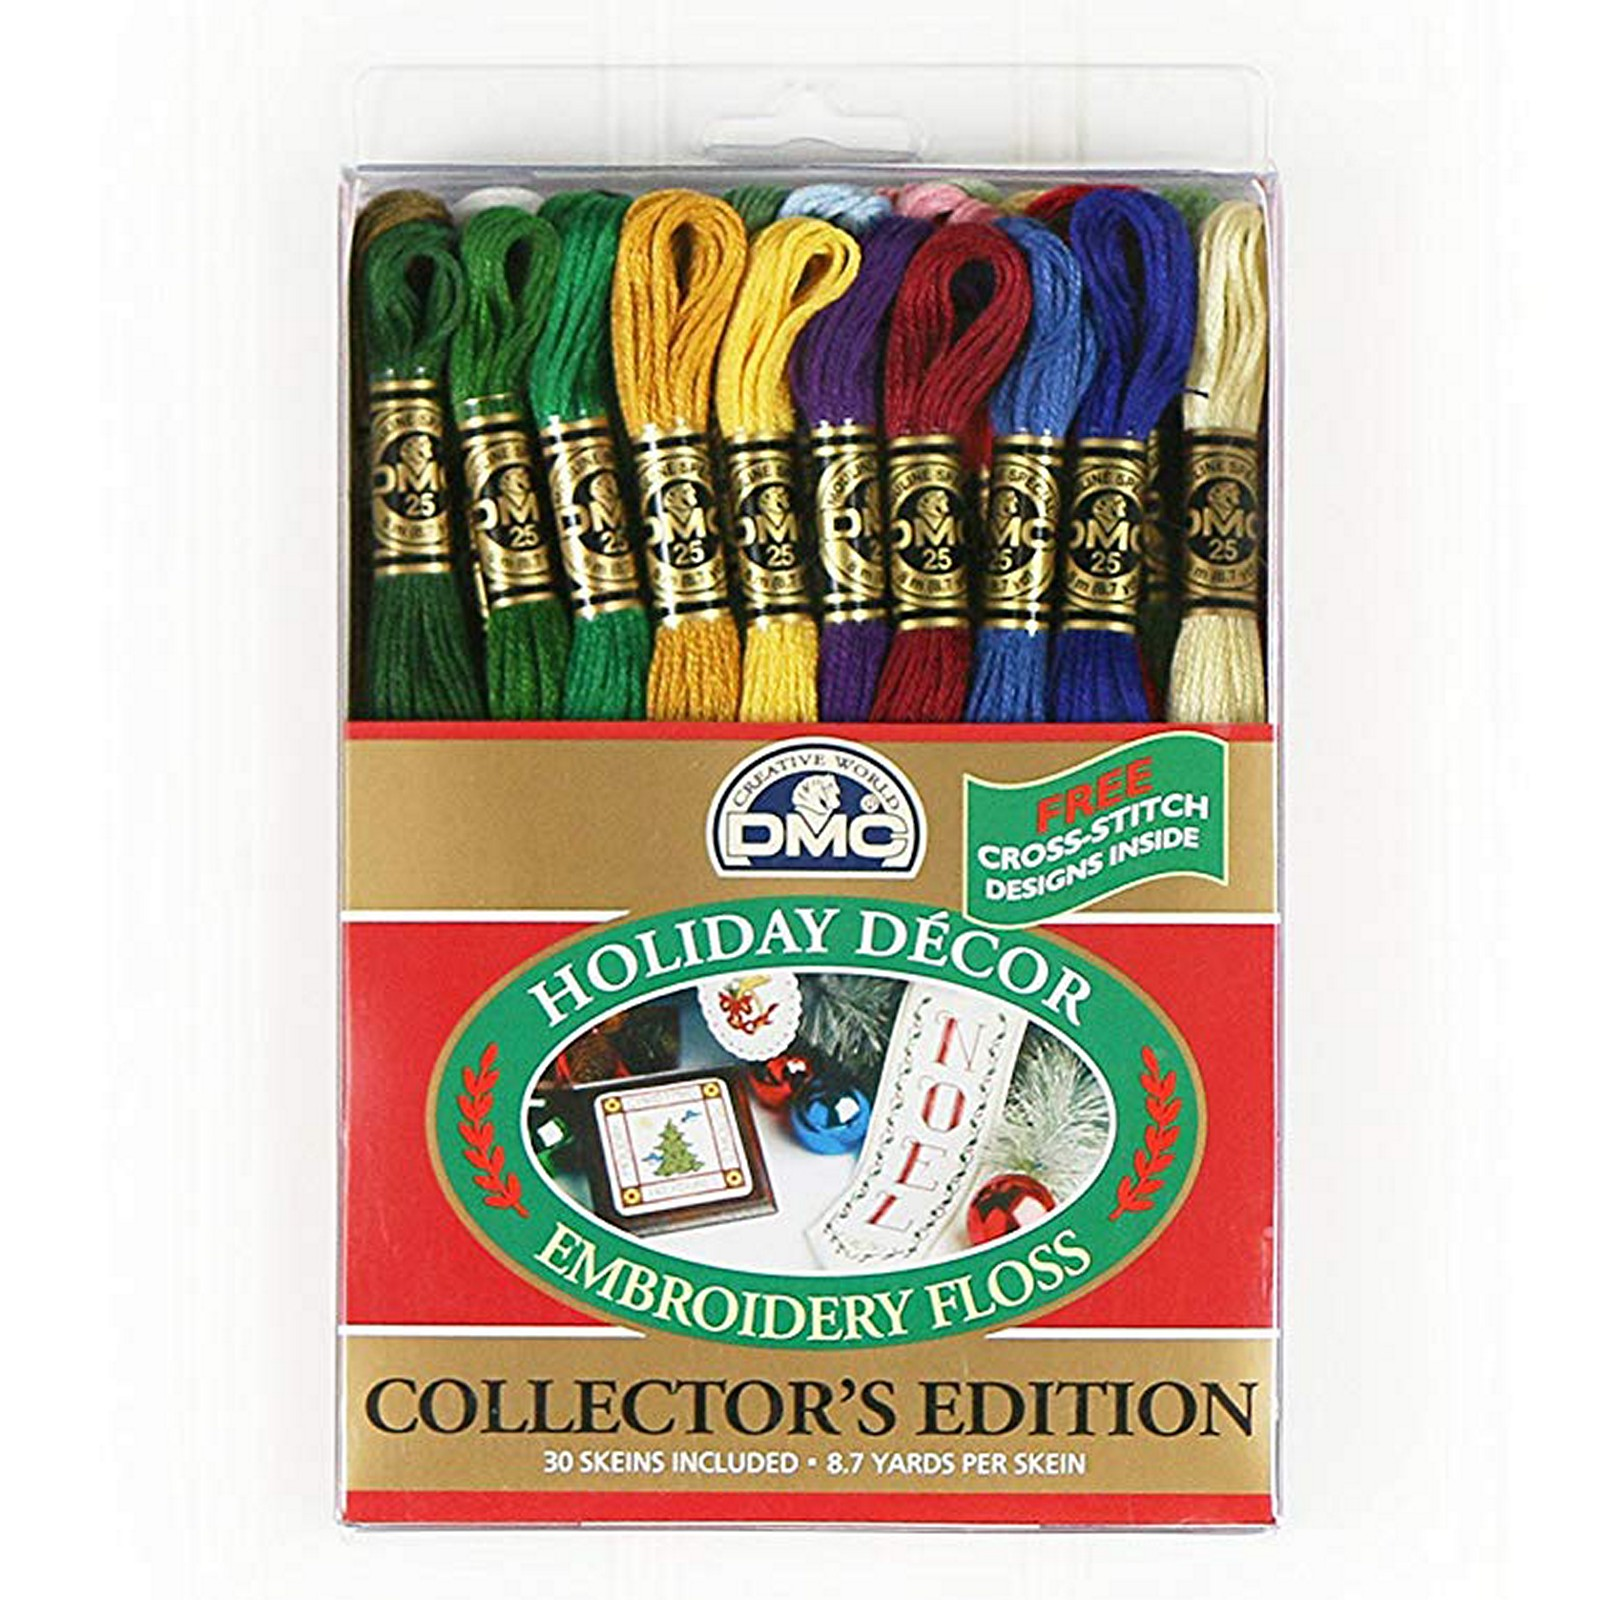 DMC Embroidery Floss Pack 8.7yd, Holiday Decor 30Pkg